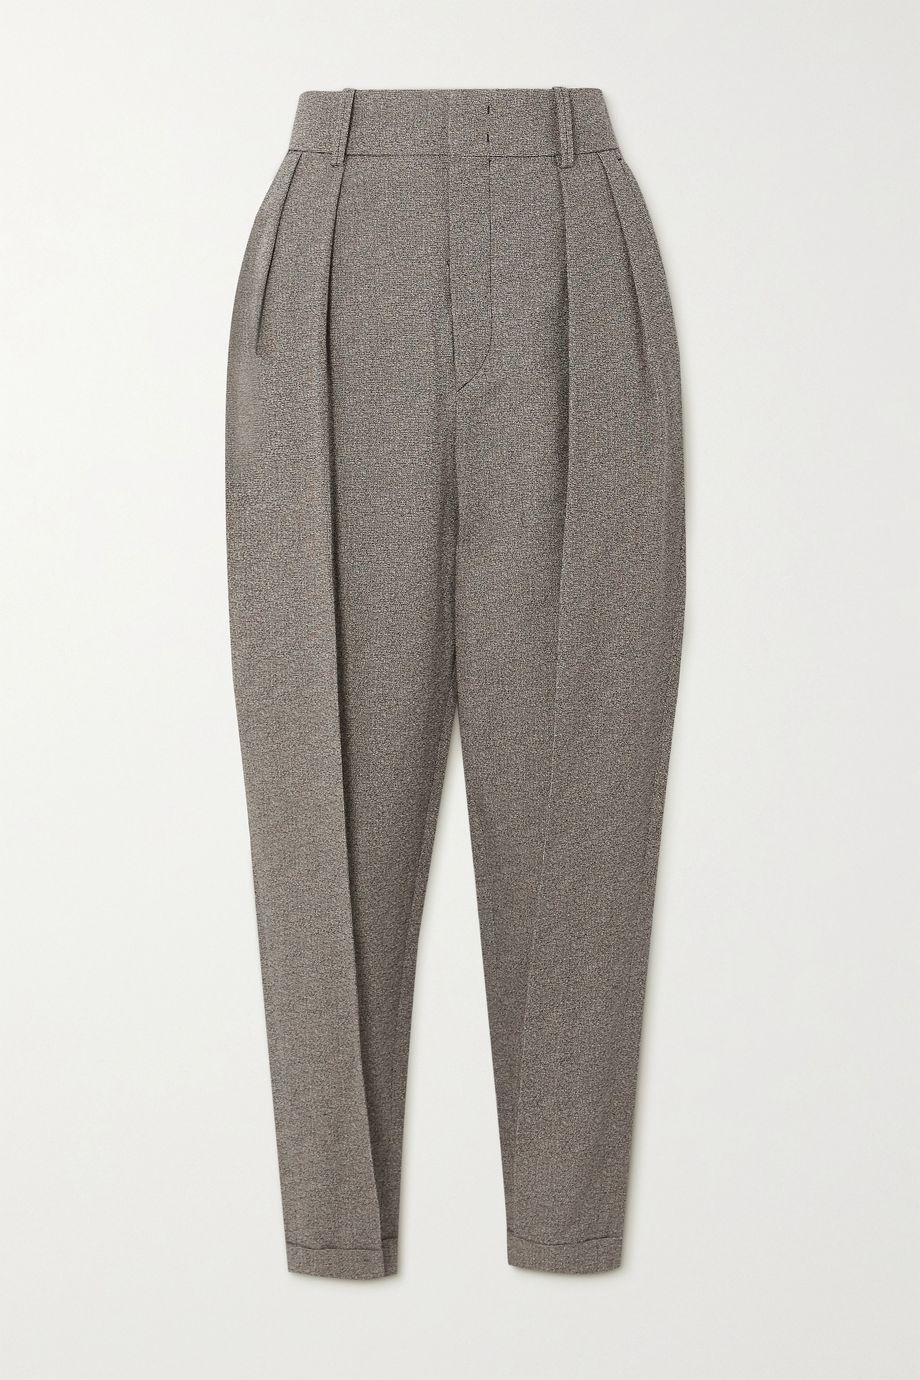 Isabel Marant Oceyo pleated woven tapered pants